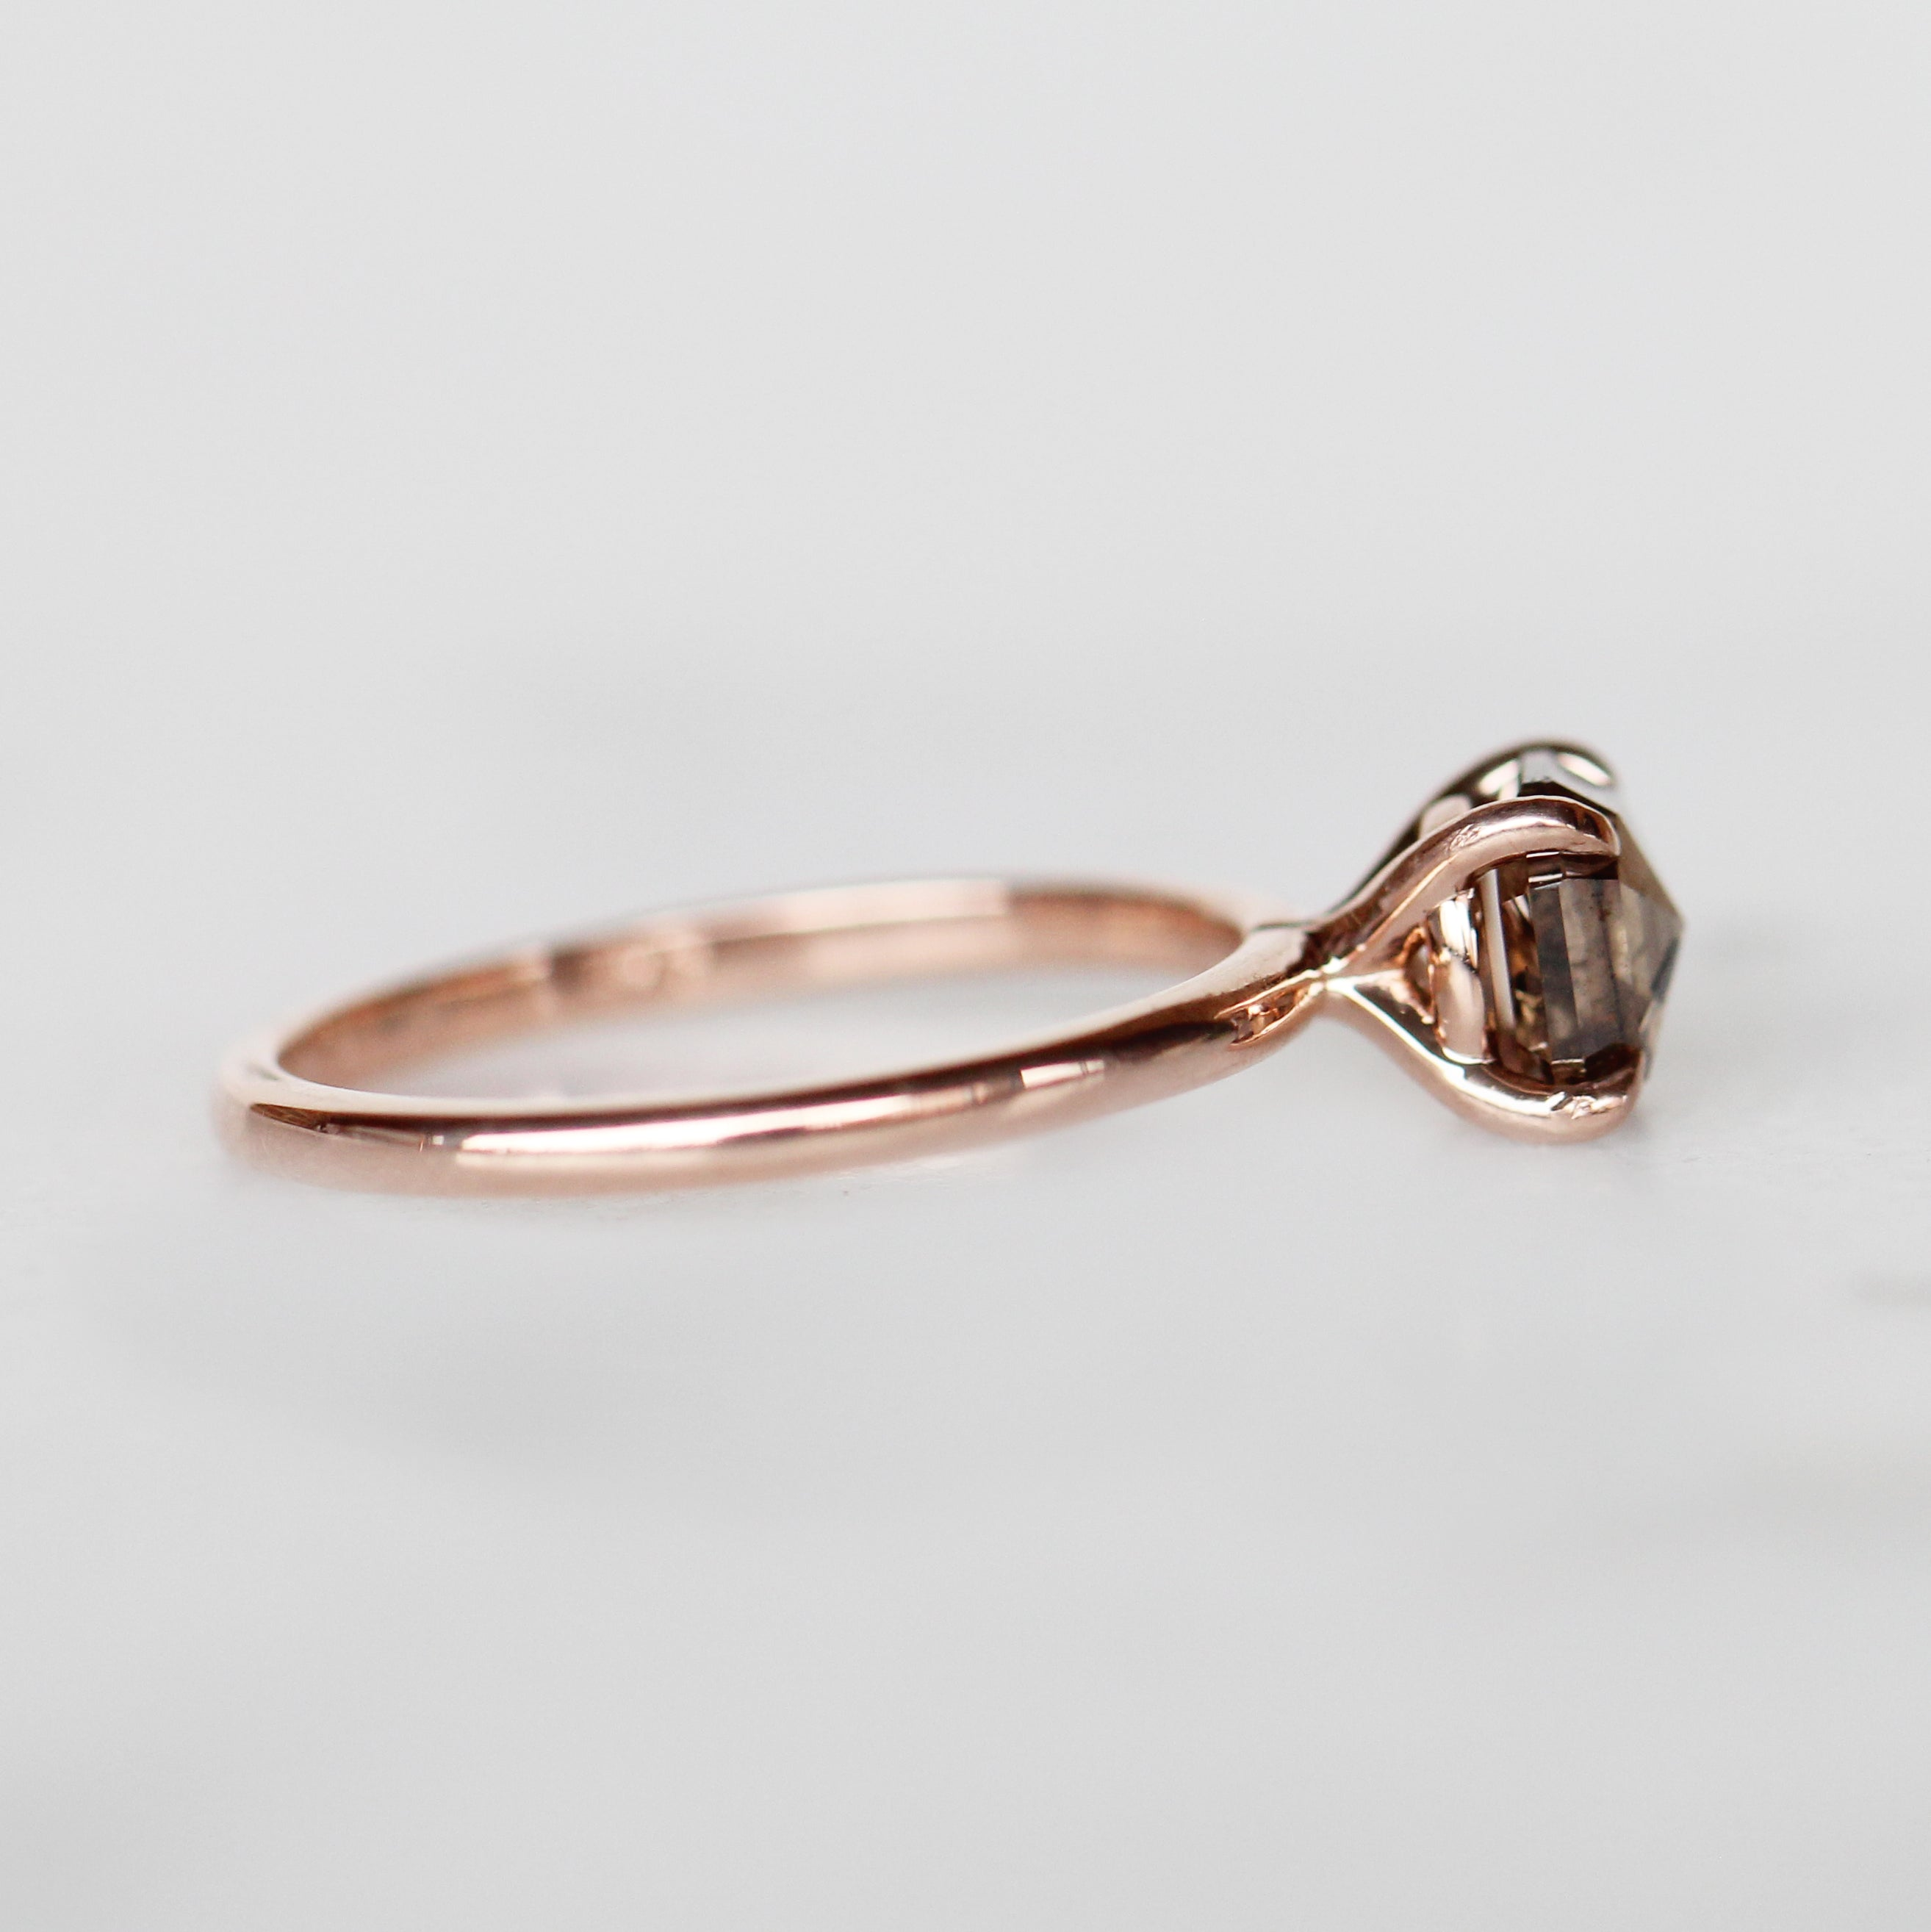 Emma Ring with 1.23 carat Asscher Diamond in 14k Rose Gold-Ready to Size and Ship - Celestial Diamonds ® by Midwinter Co.